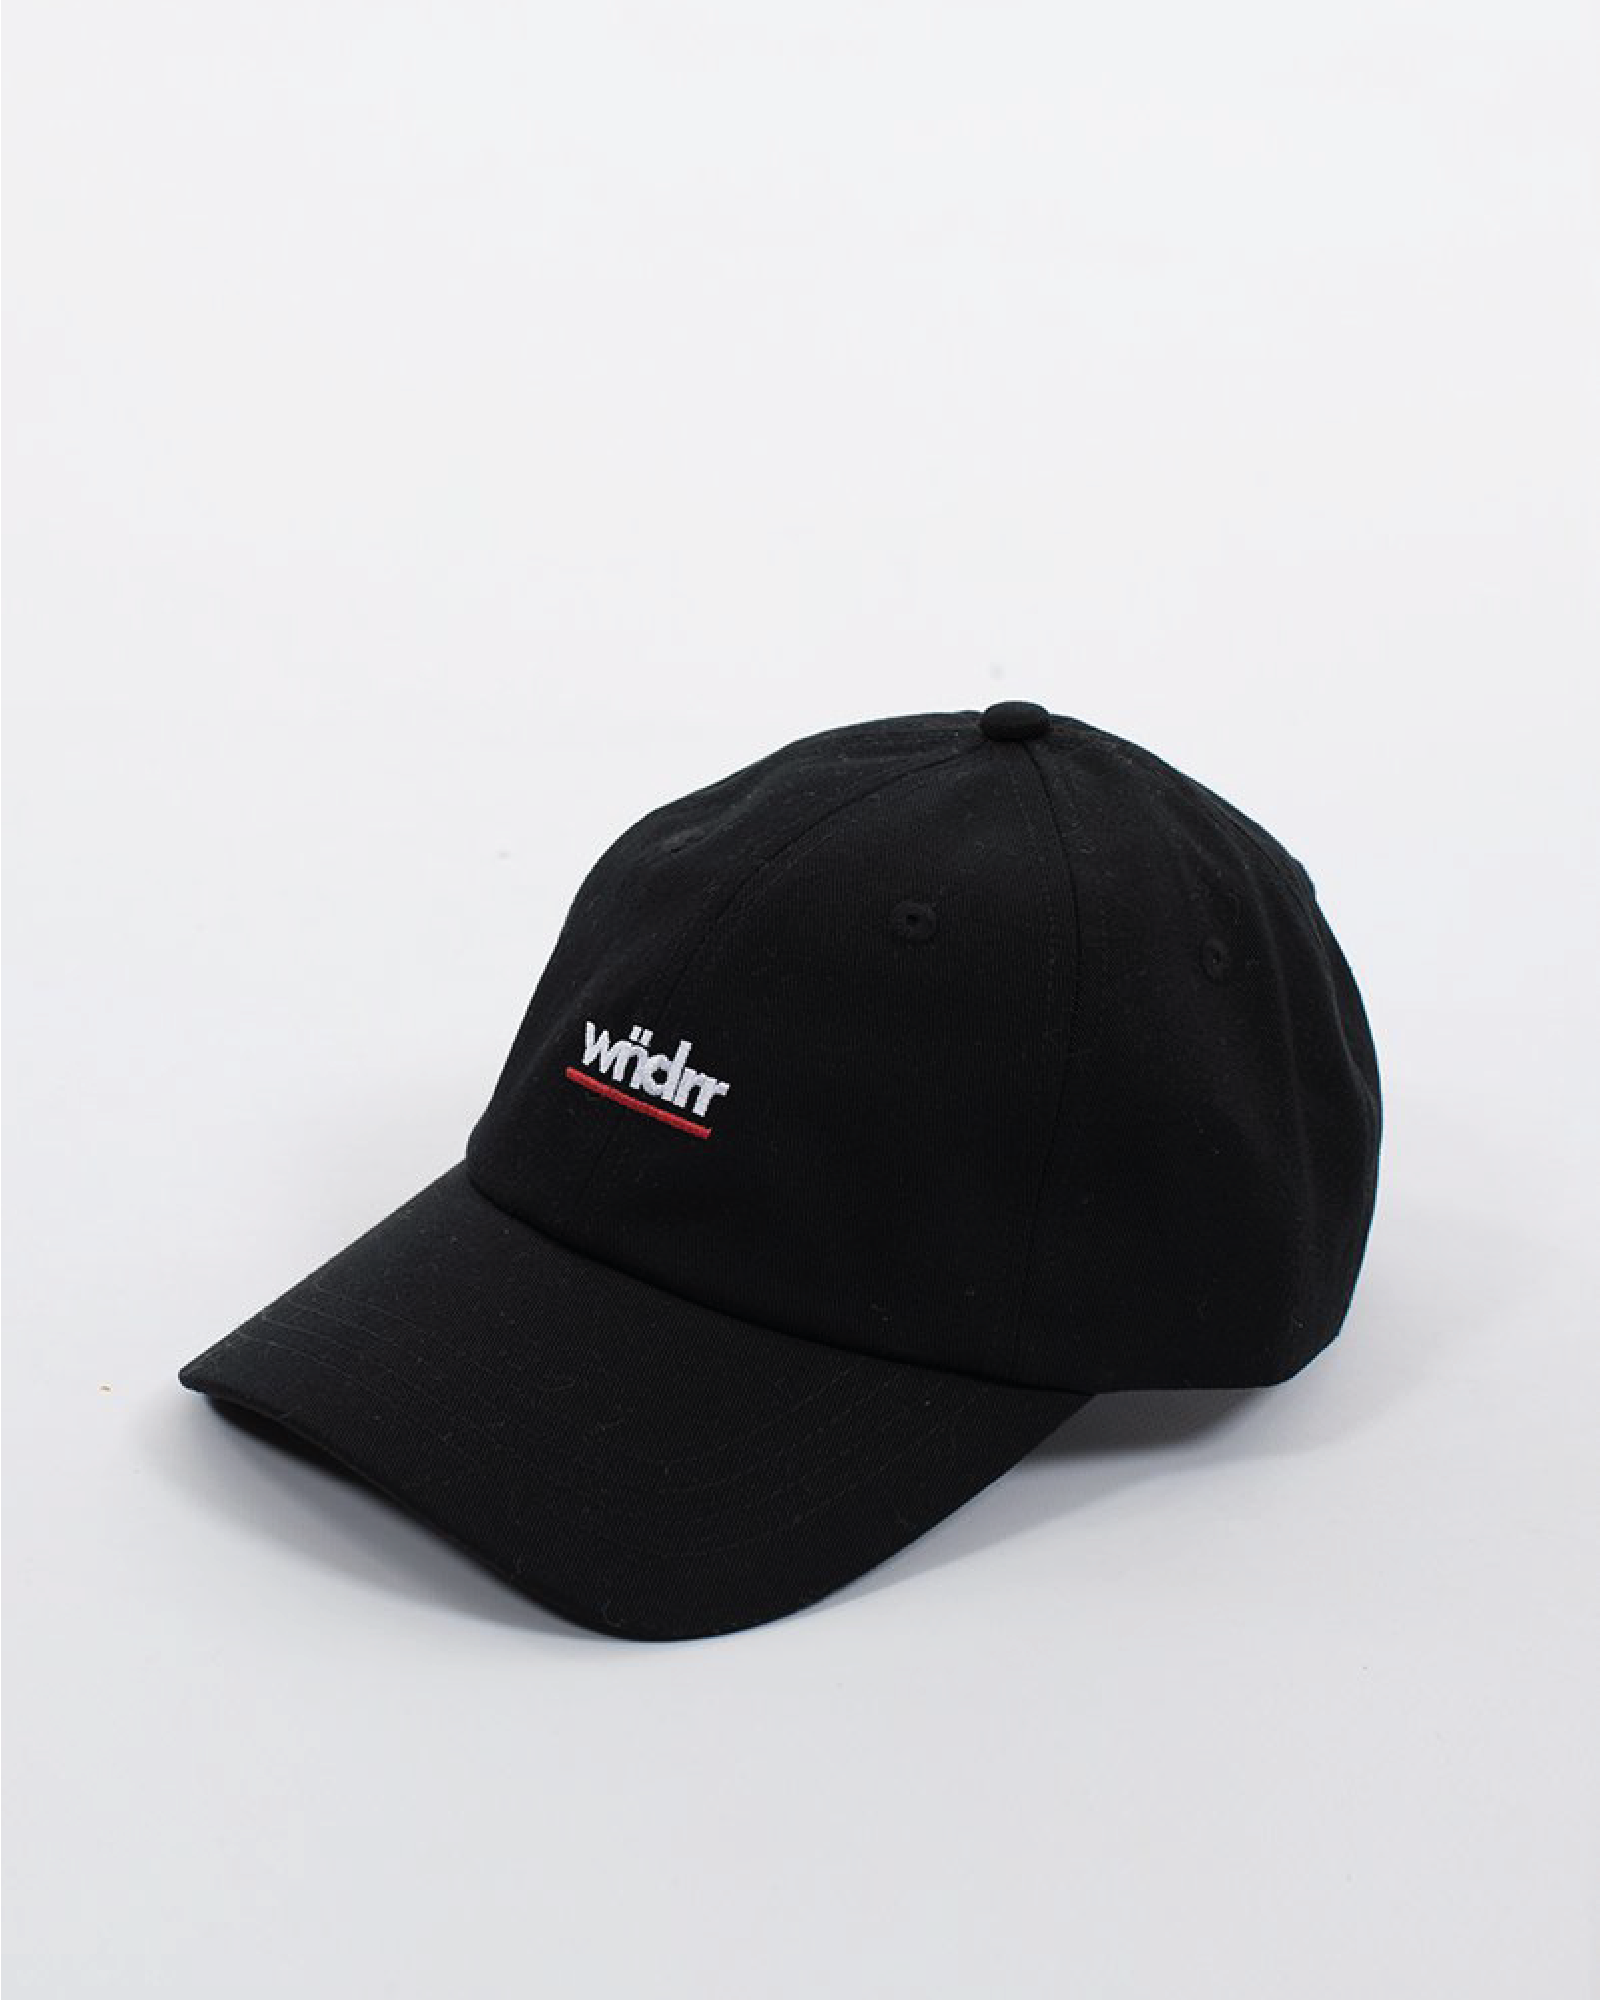 Wndrr Mirage 6 Panel Cap - Black